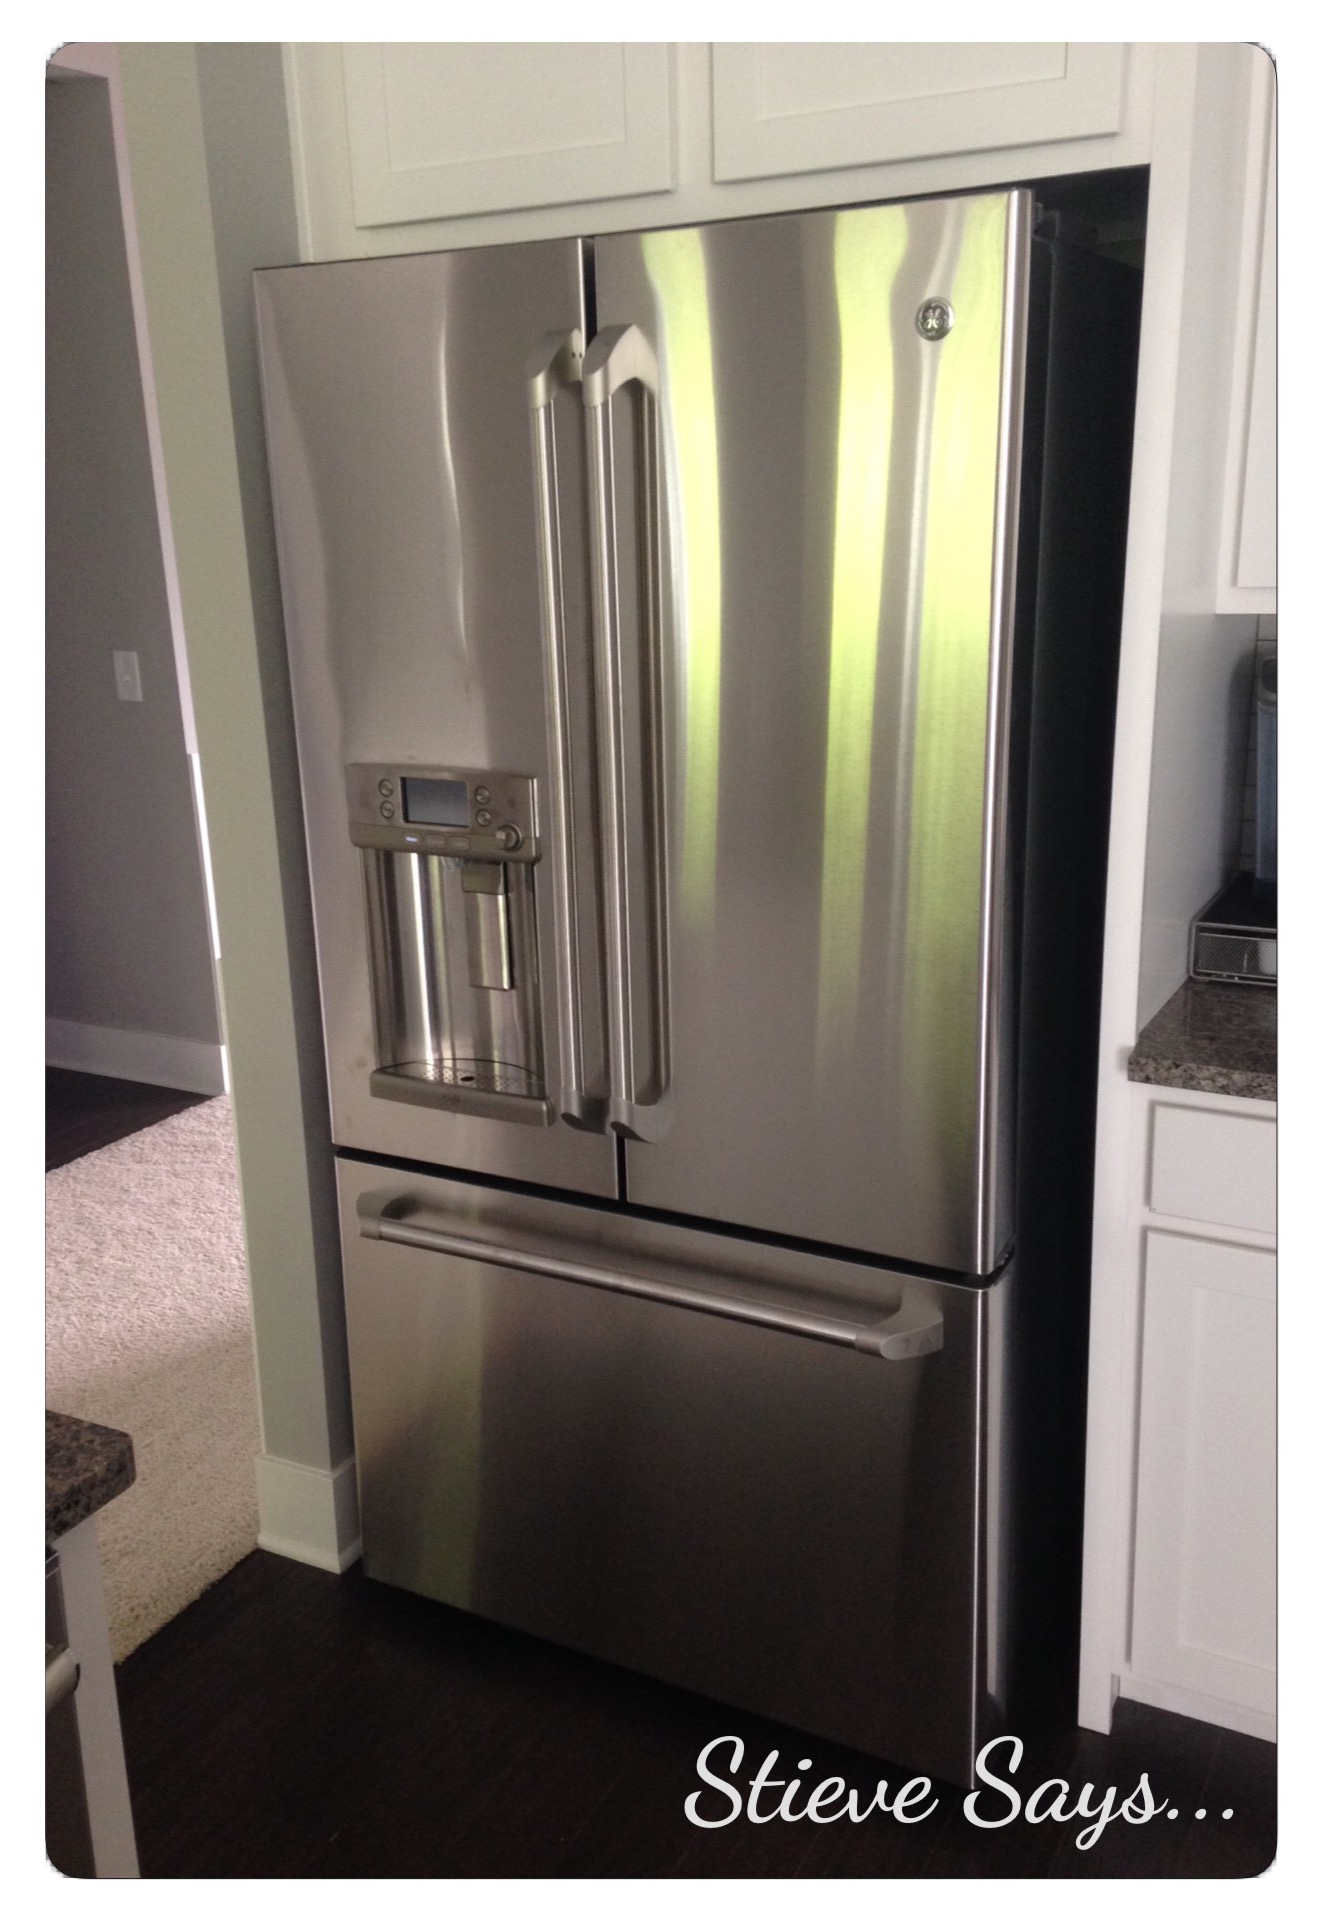 A rundown of our appliance selections stieve says fullsizerender 2 ge cafe series 221 cu ft counter depth french door rubansaba